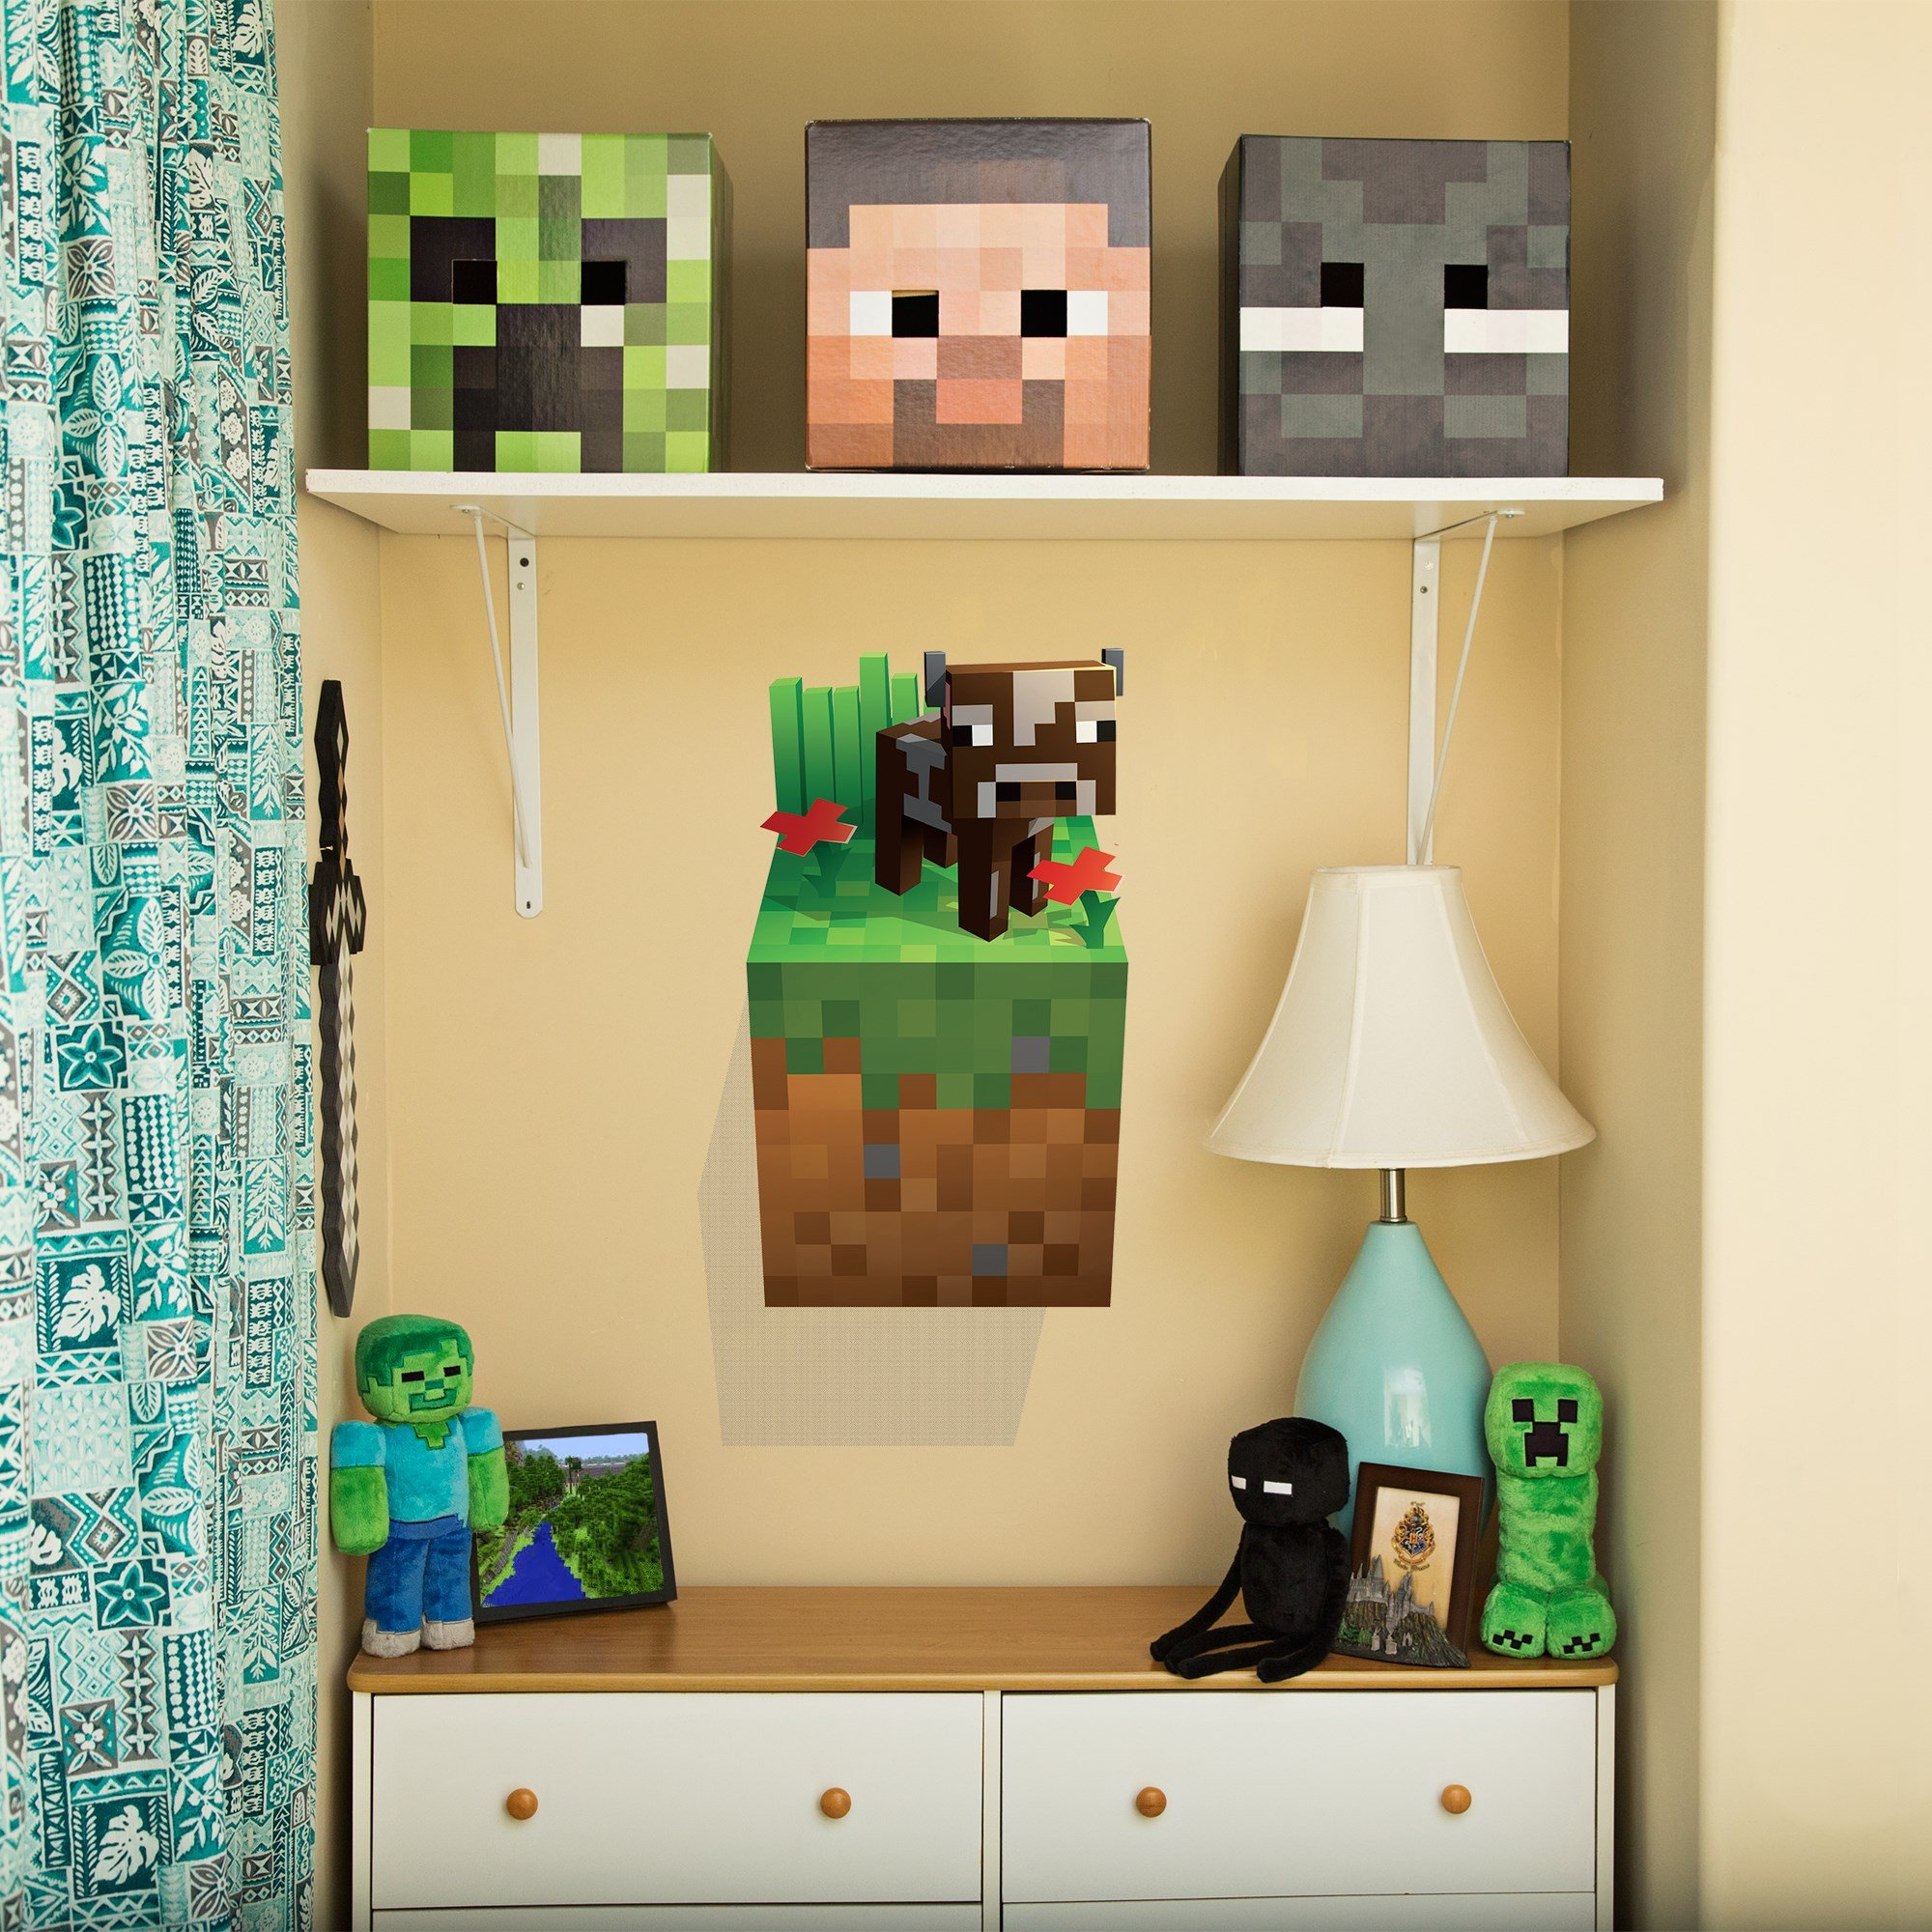 JINX Minecraft Wall Cling Decal Set (Creeper, Enderman, Pig, Cow) by JINX (Image #6)